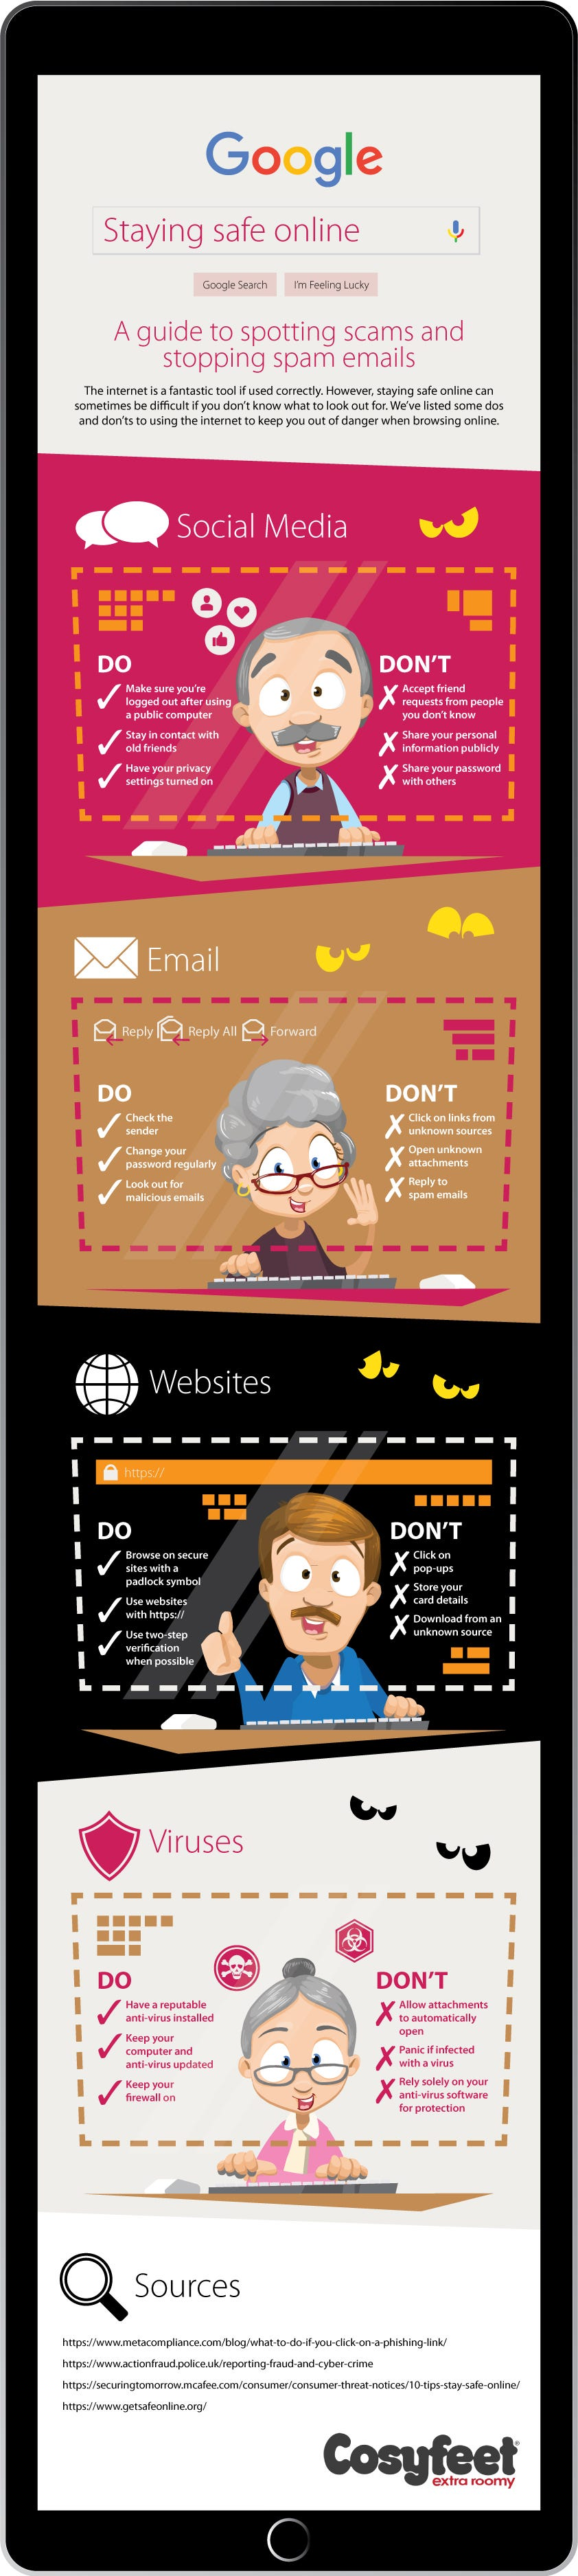 Infographic for staying safe online